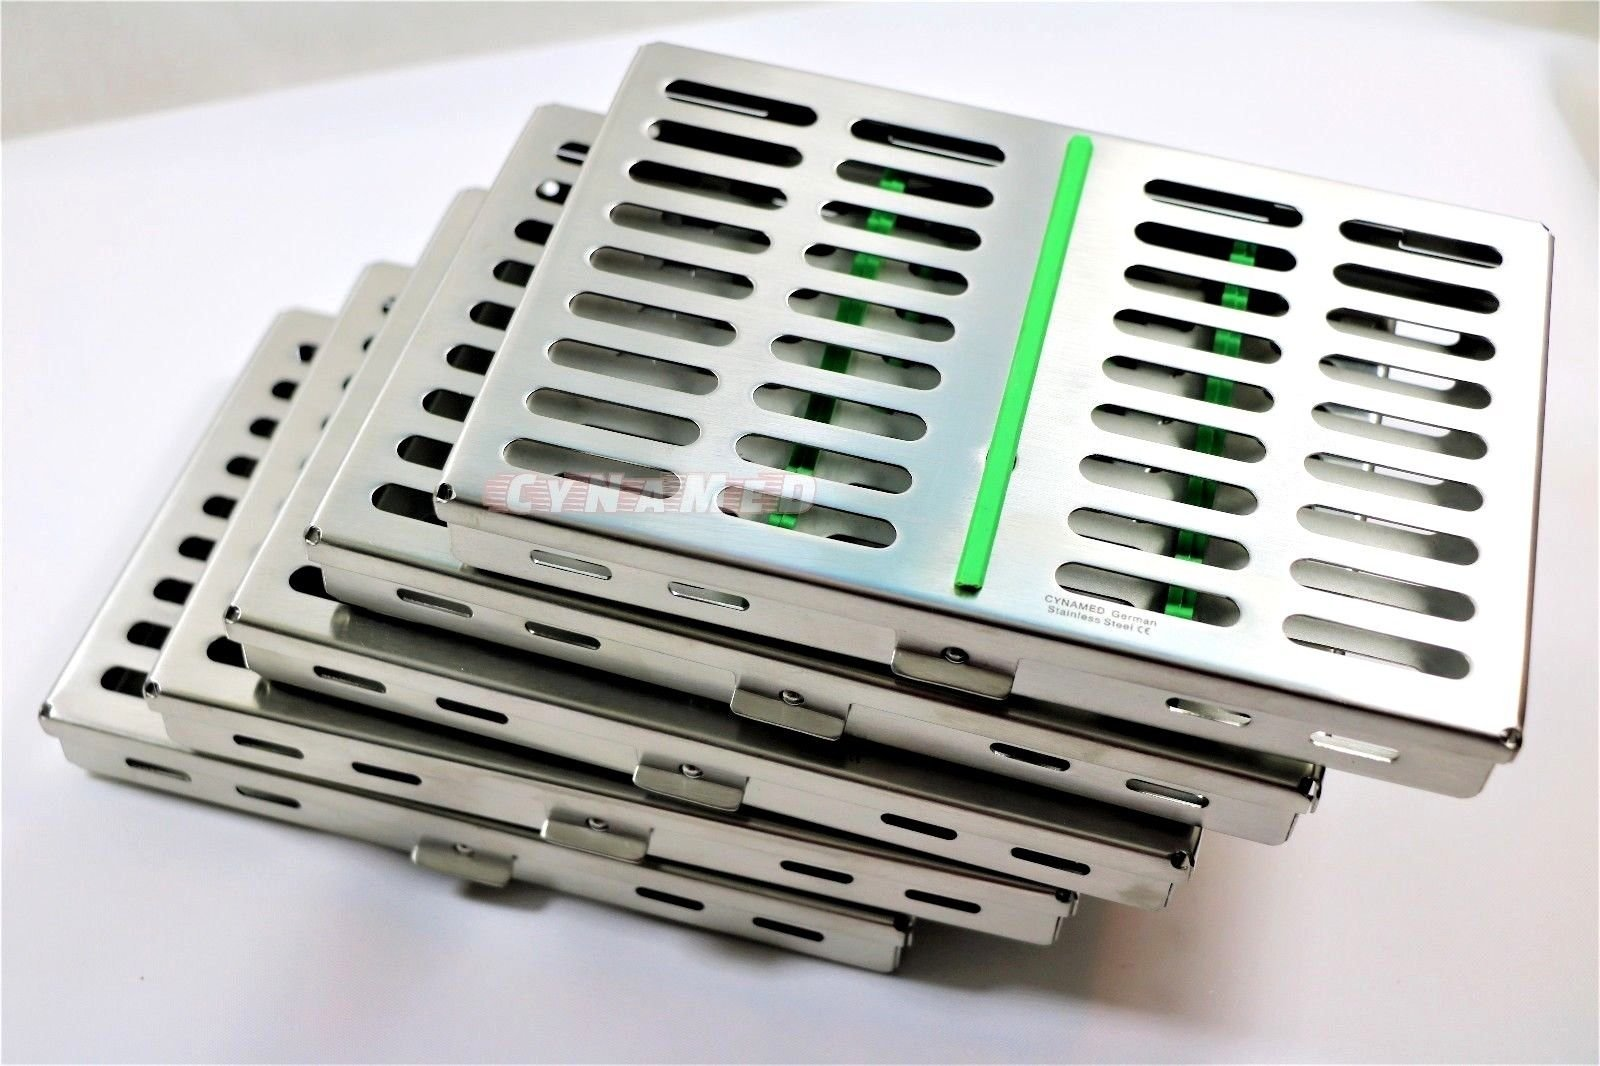 10 German Dental Surgical Autoclave Sterilization Cassette Box for 10 Instruments Green CYNAMED by CYNAMED (Image #4)